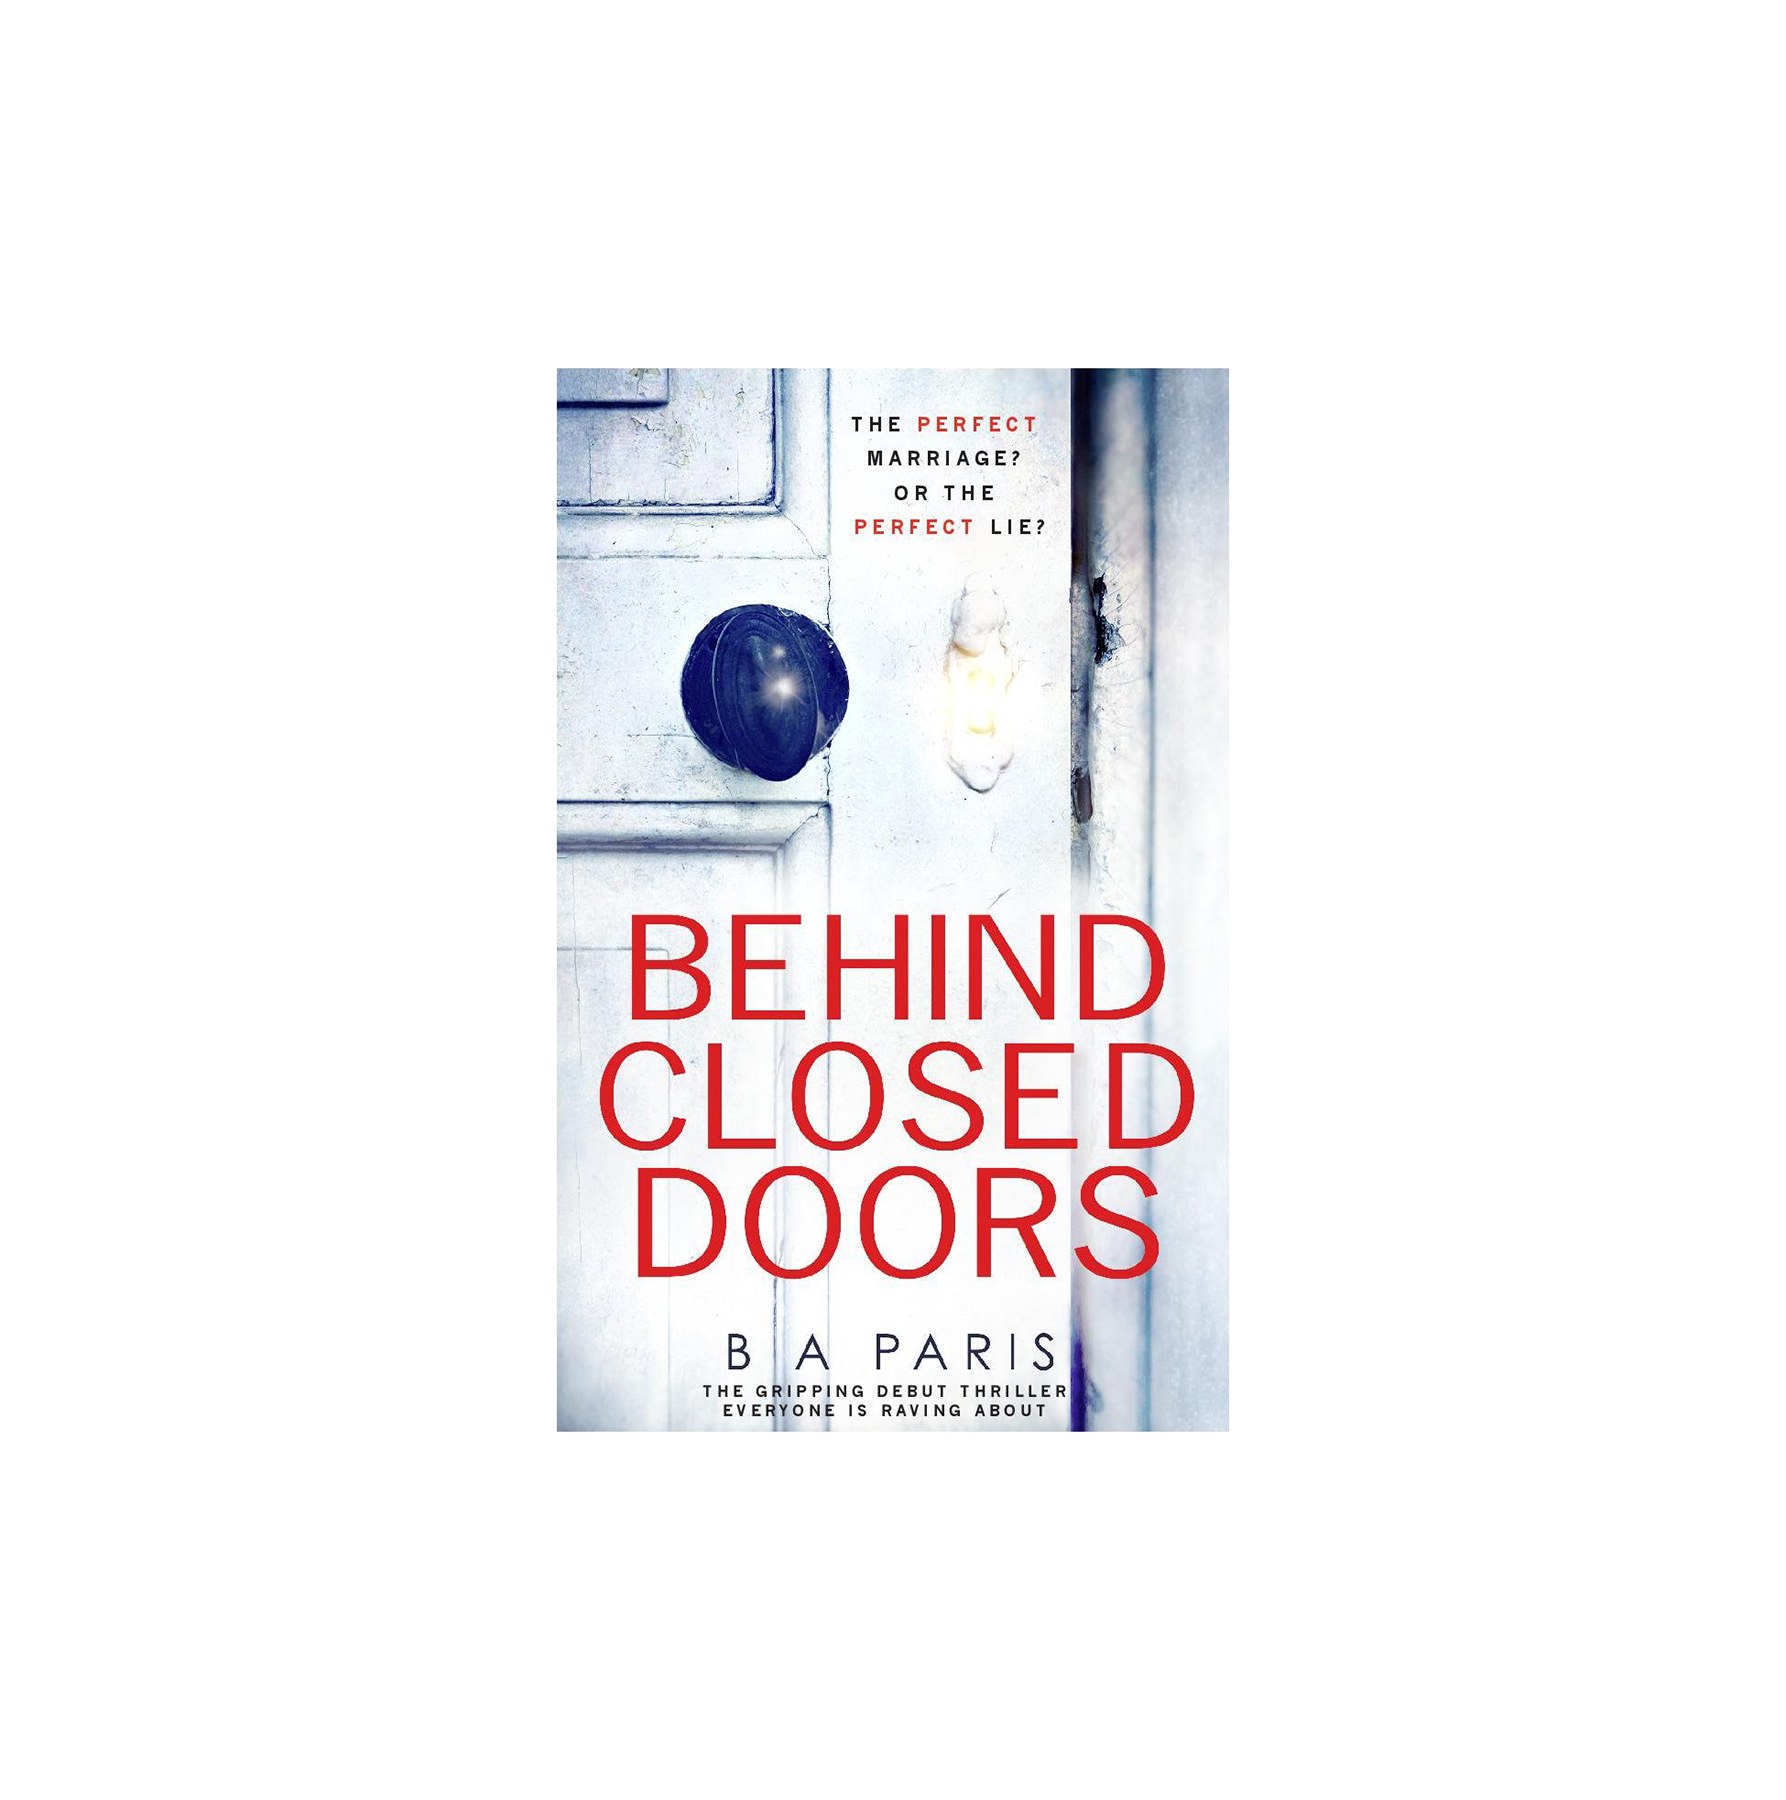 Behind Closed Doors, by B.A. Paris